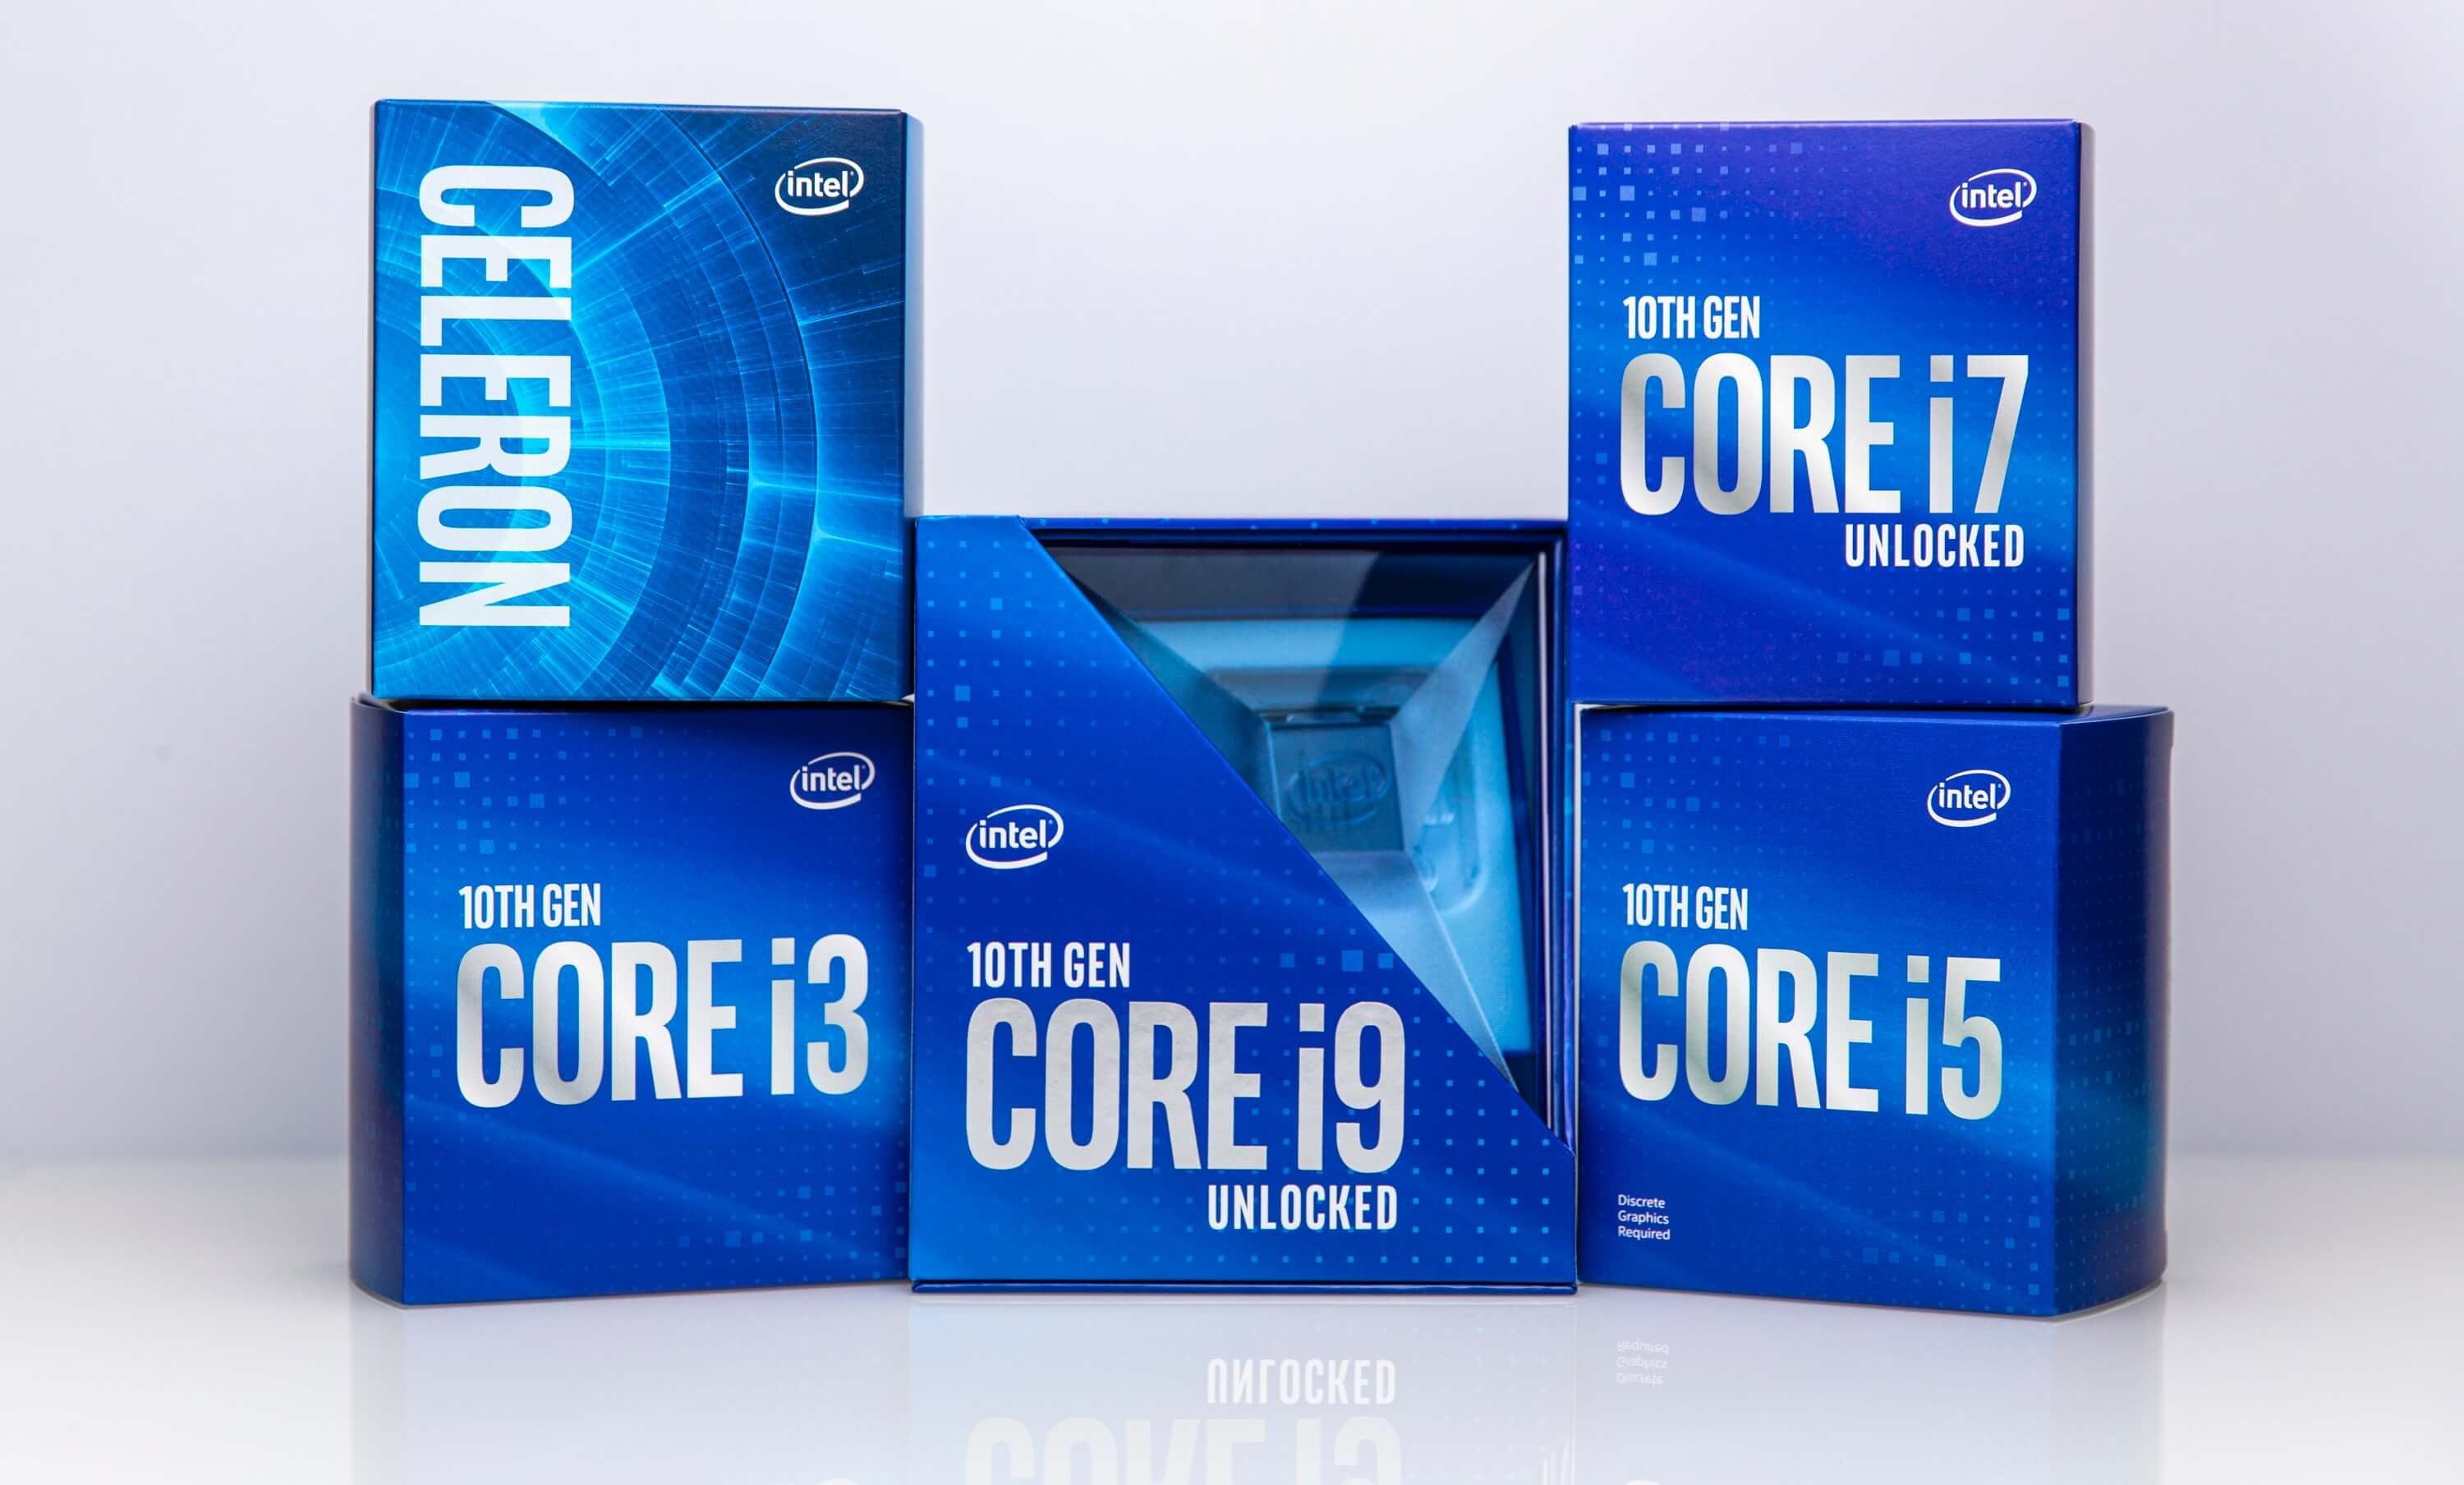 Intel Core i9-10900K is official, boosting up to 5.3 GHz; Core i7 and Core i5 get competitive against Ryzen